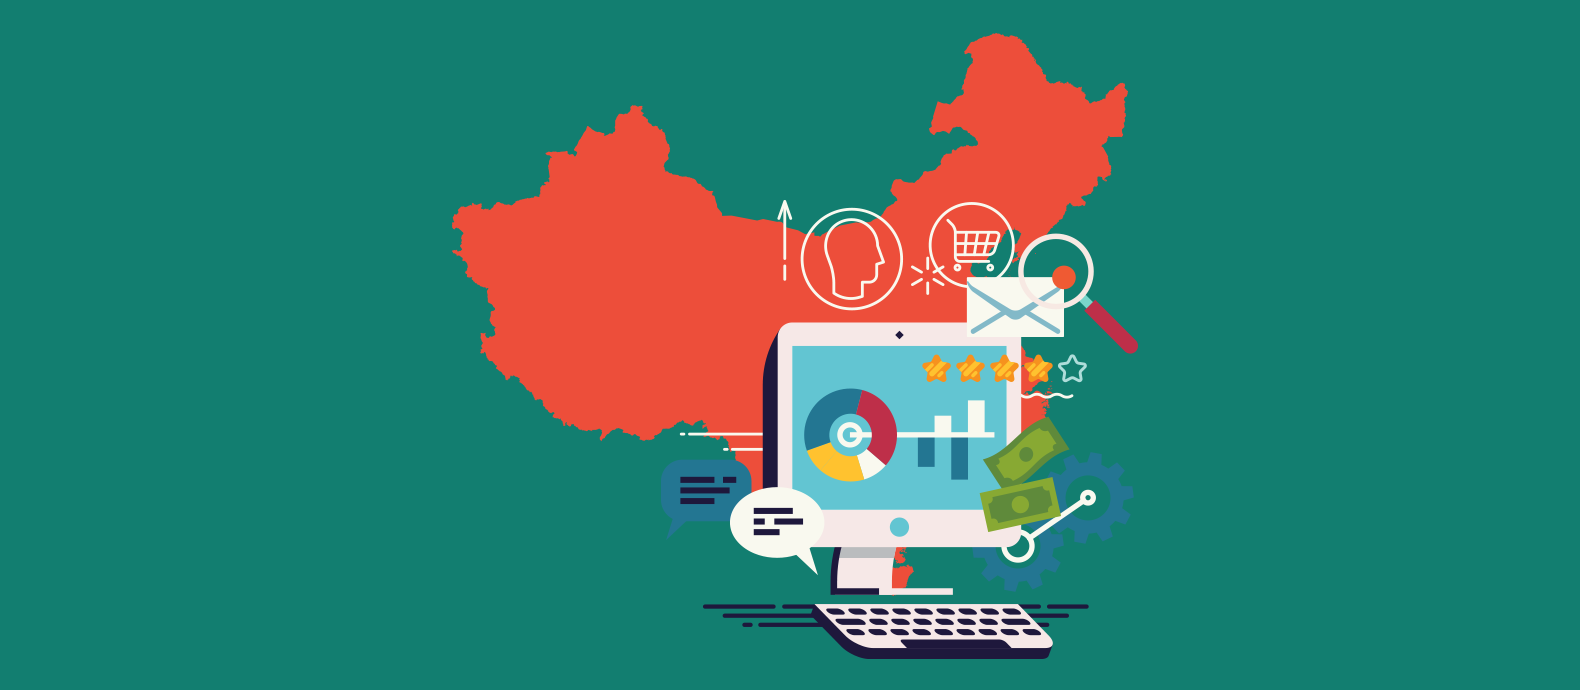 Working with distributors in China can be a great way to expand and grow